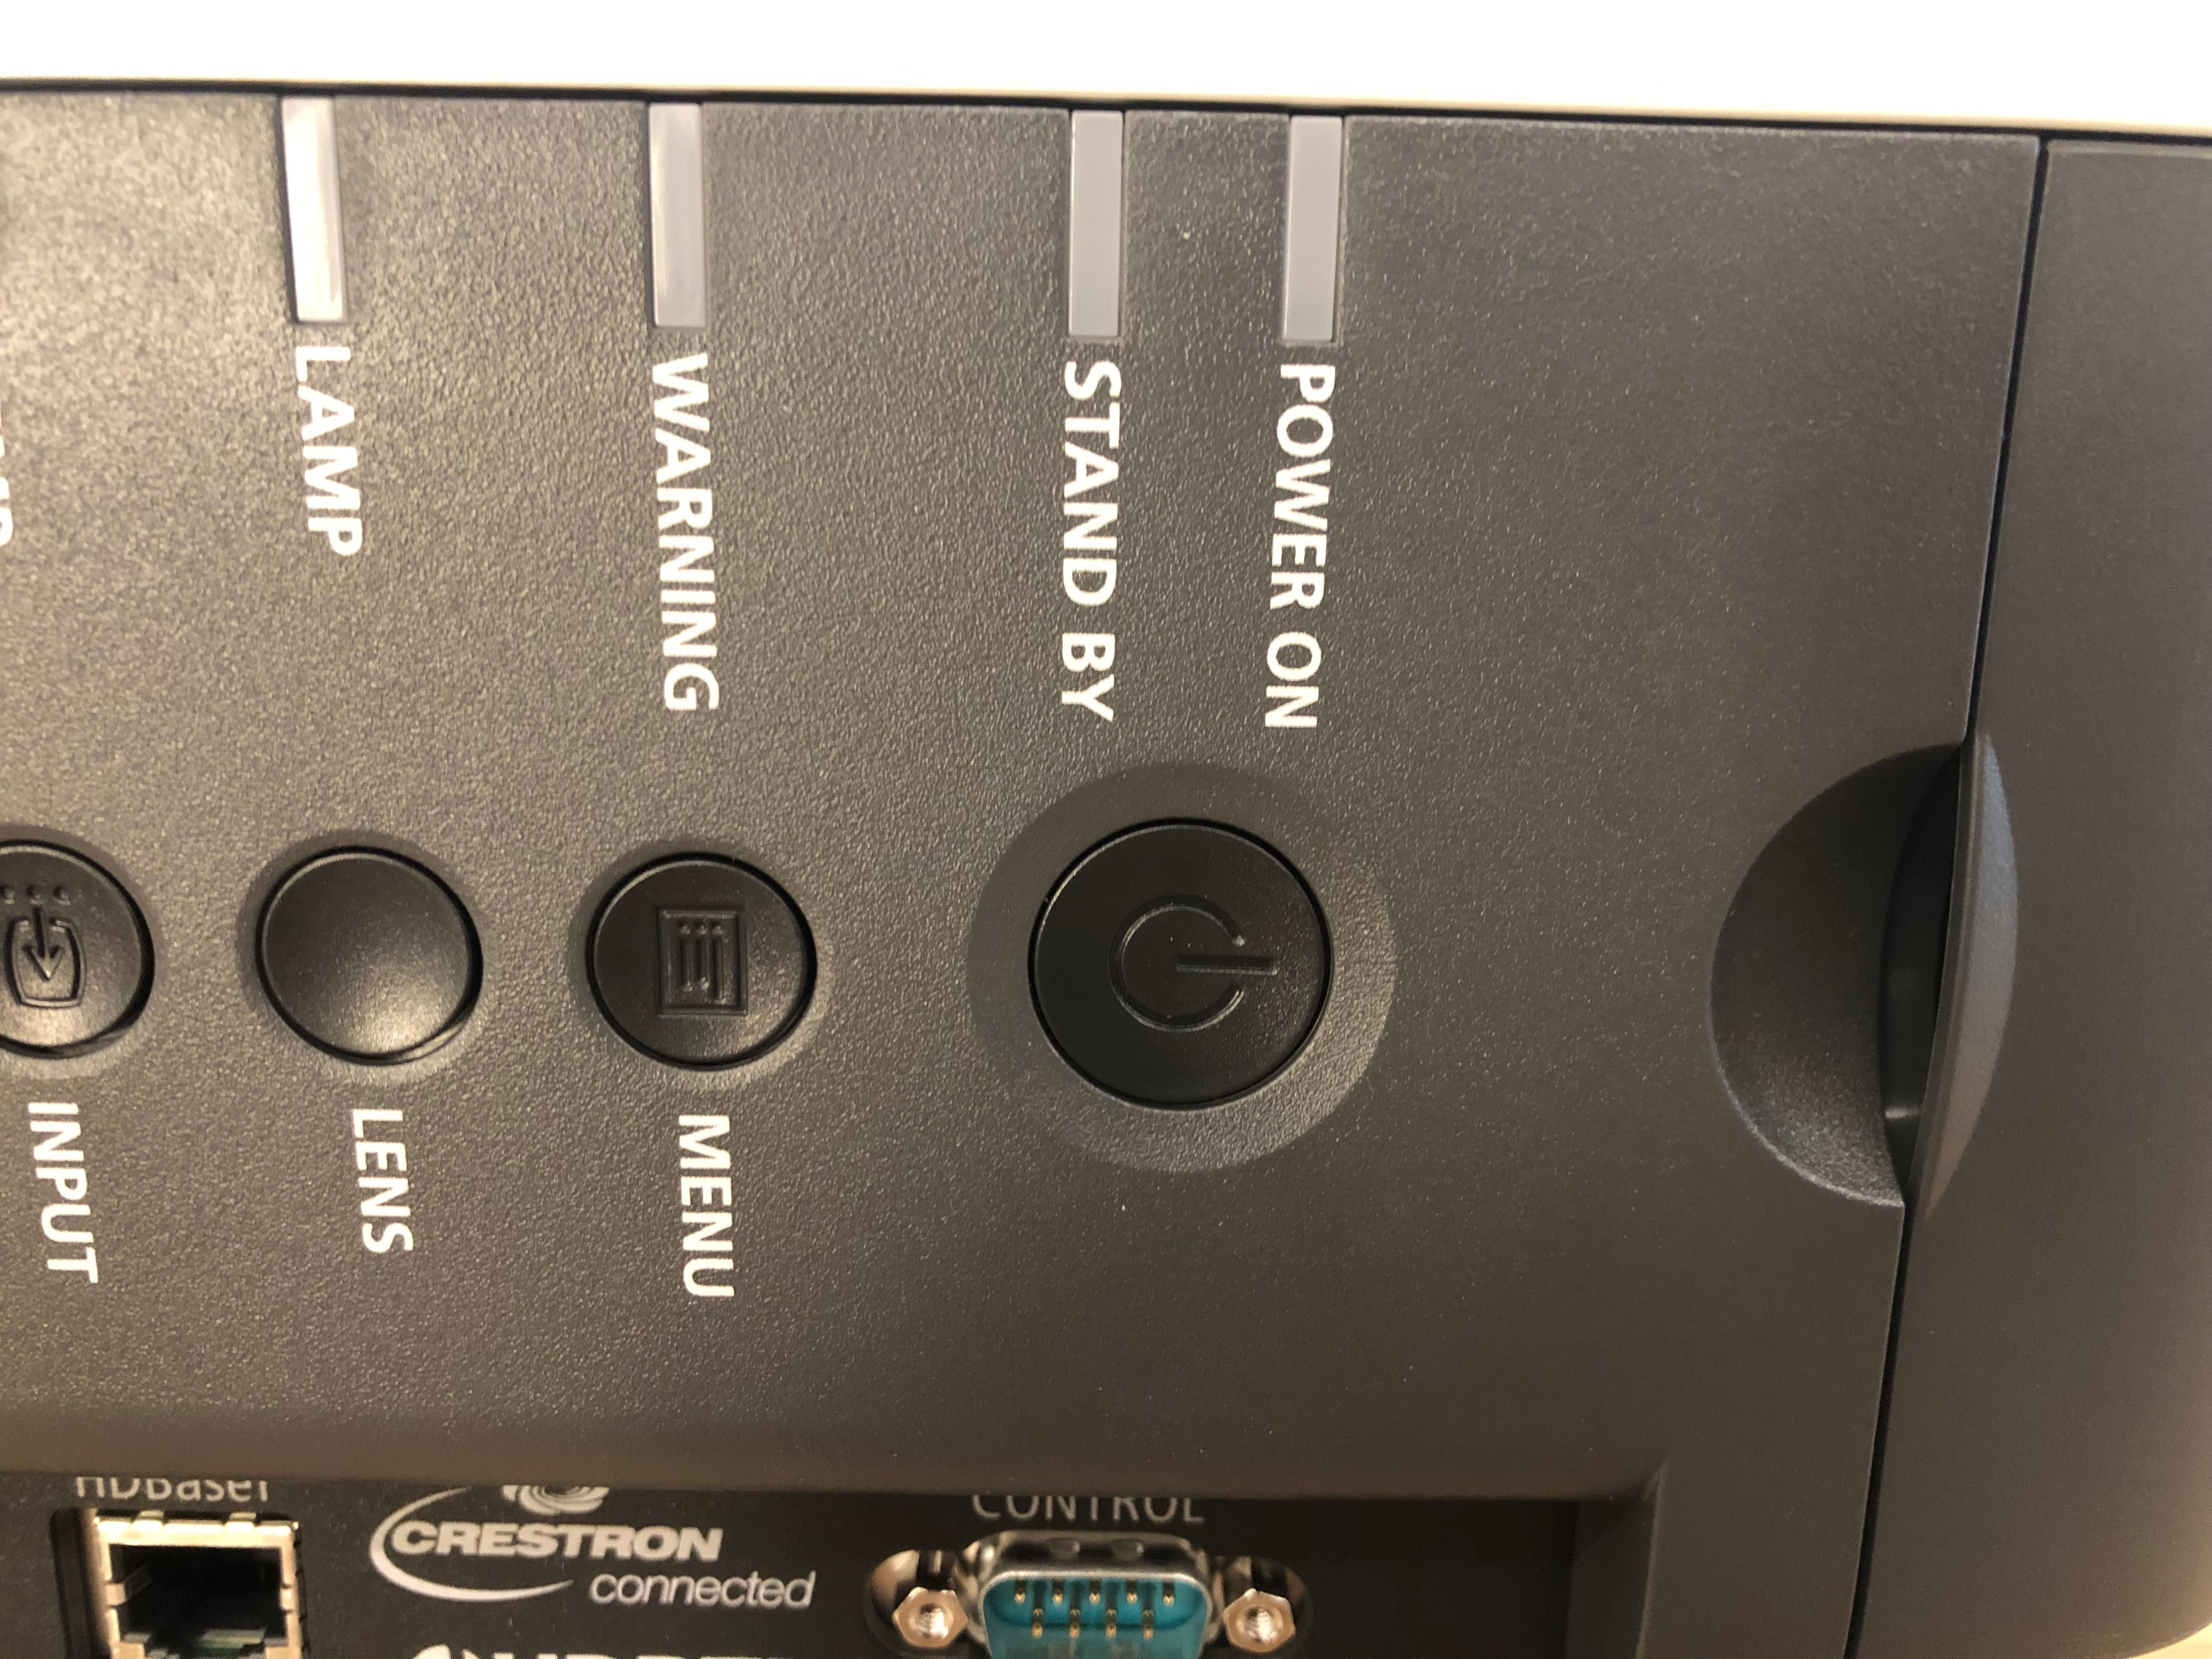 A photo of the power button on the projector.